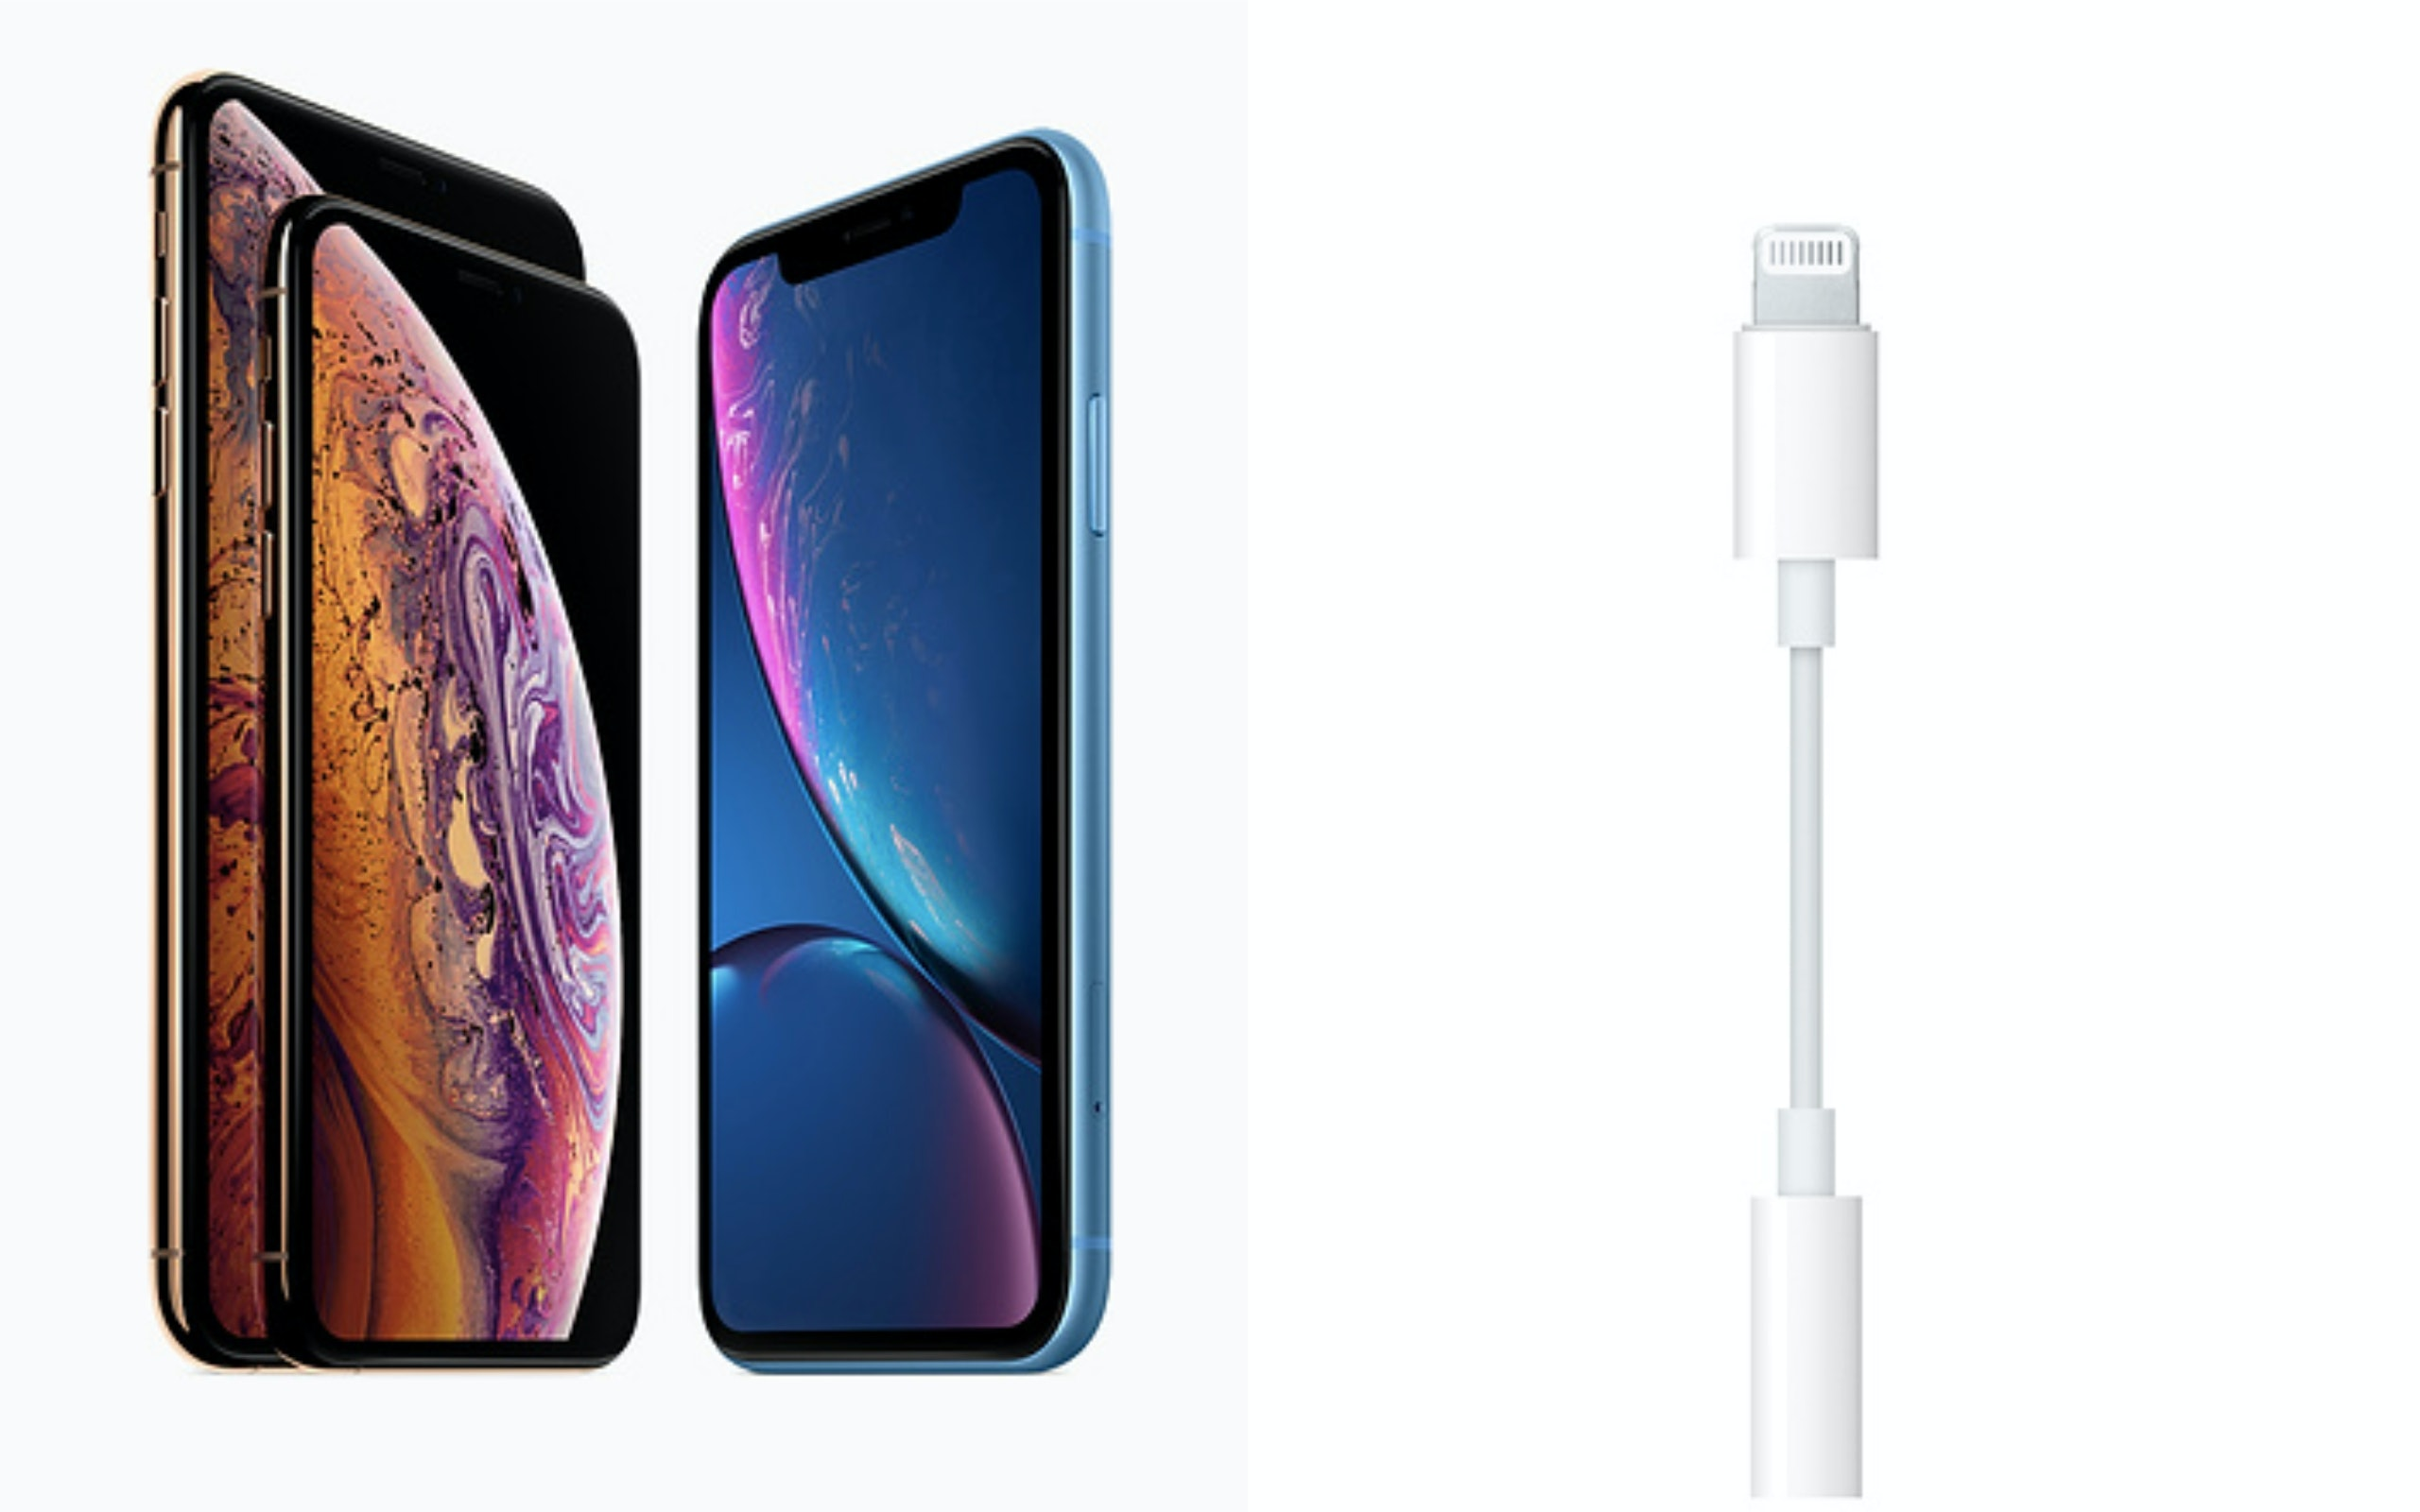 does the iphone xs have a headphone jack? apple will stop providingdoes the iphone xs have a headphone jack? apple will stop providing free adaptor dongles with this model